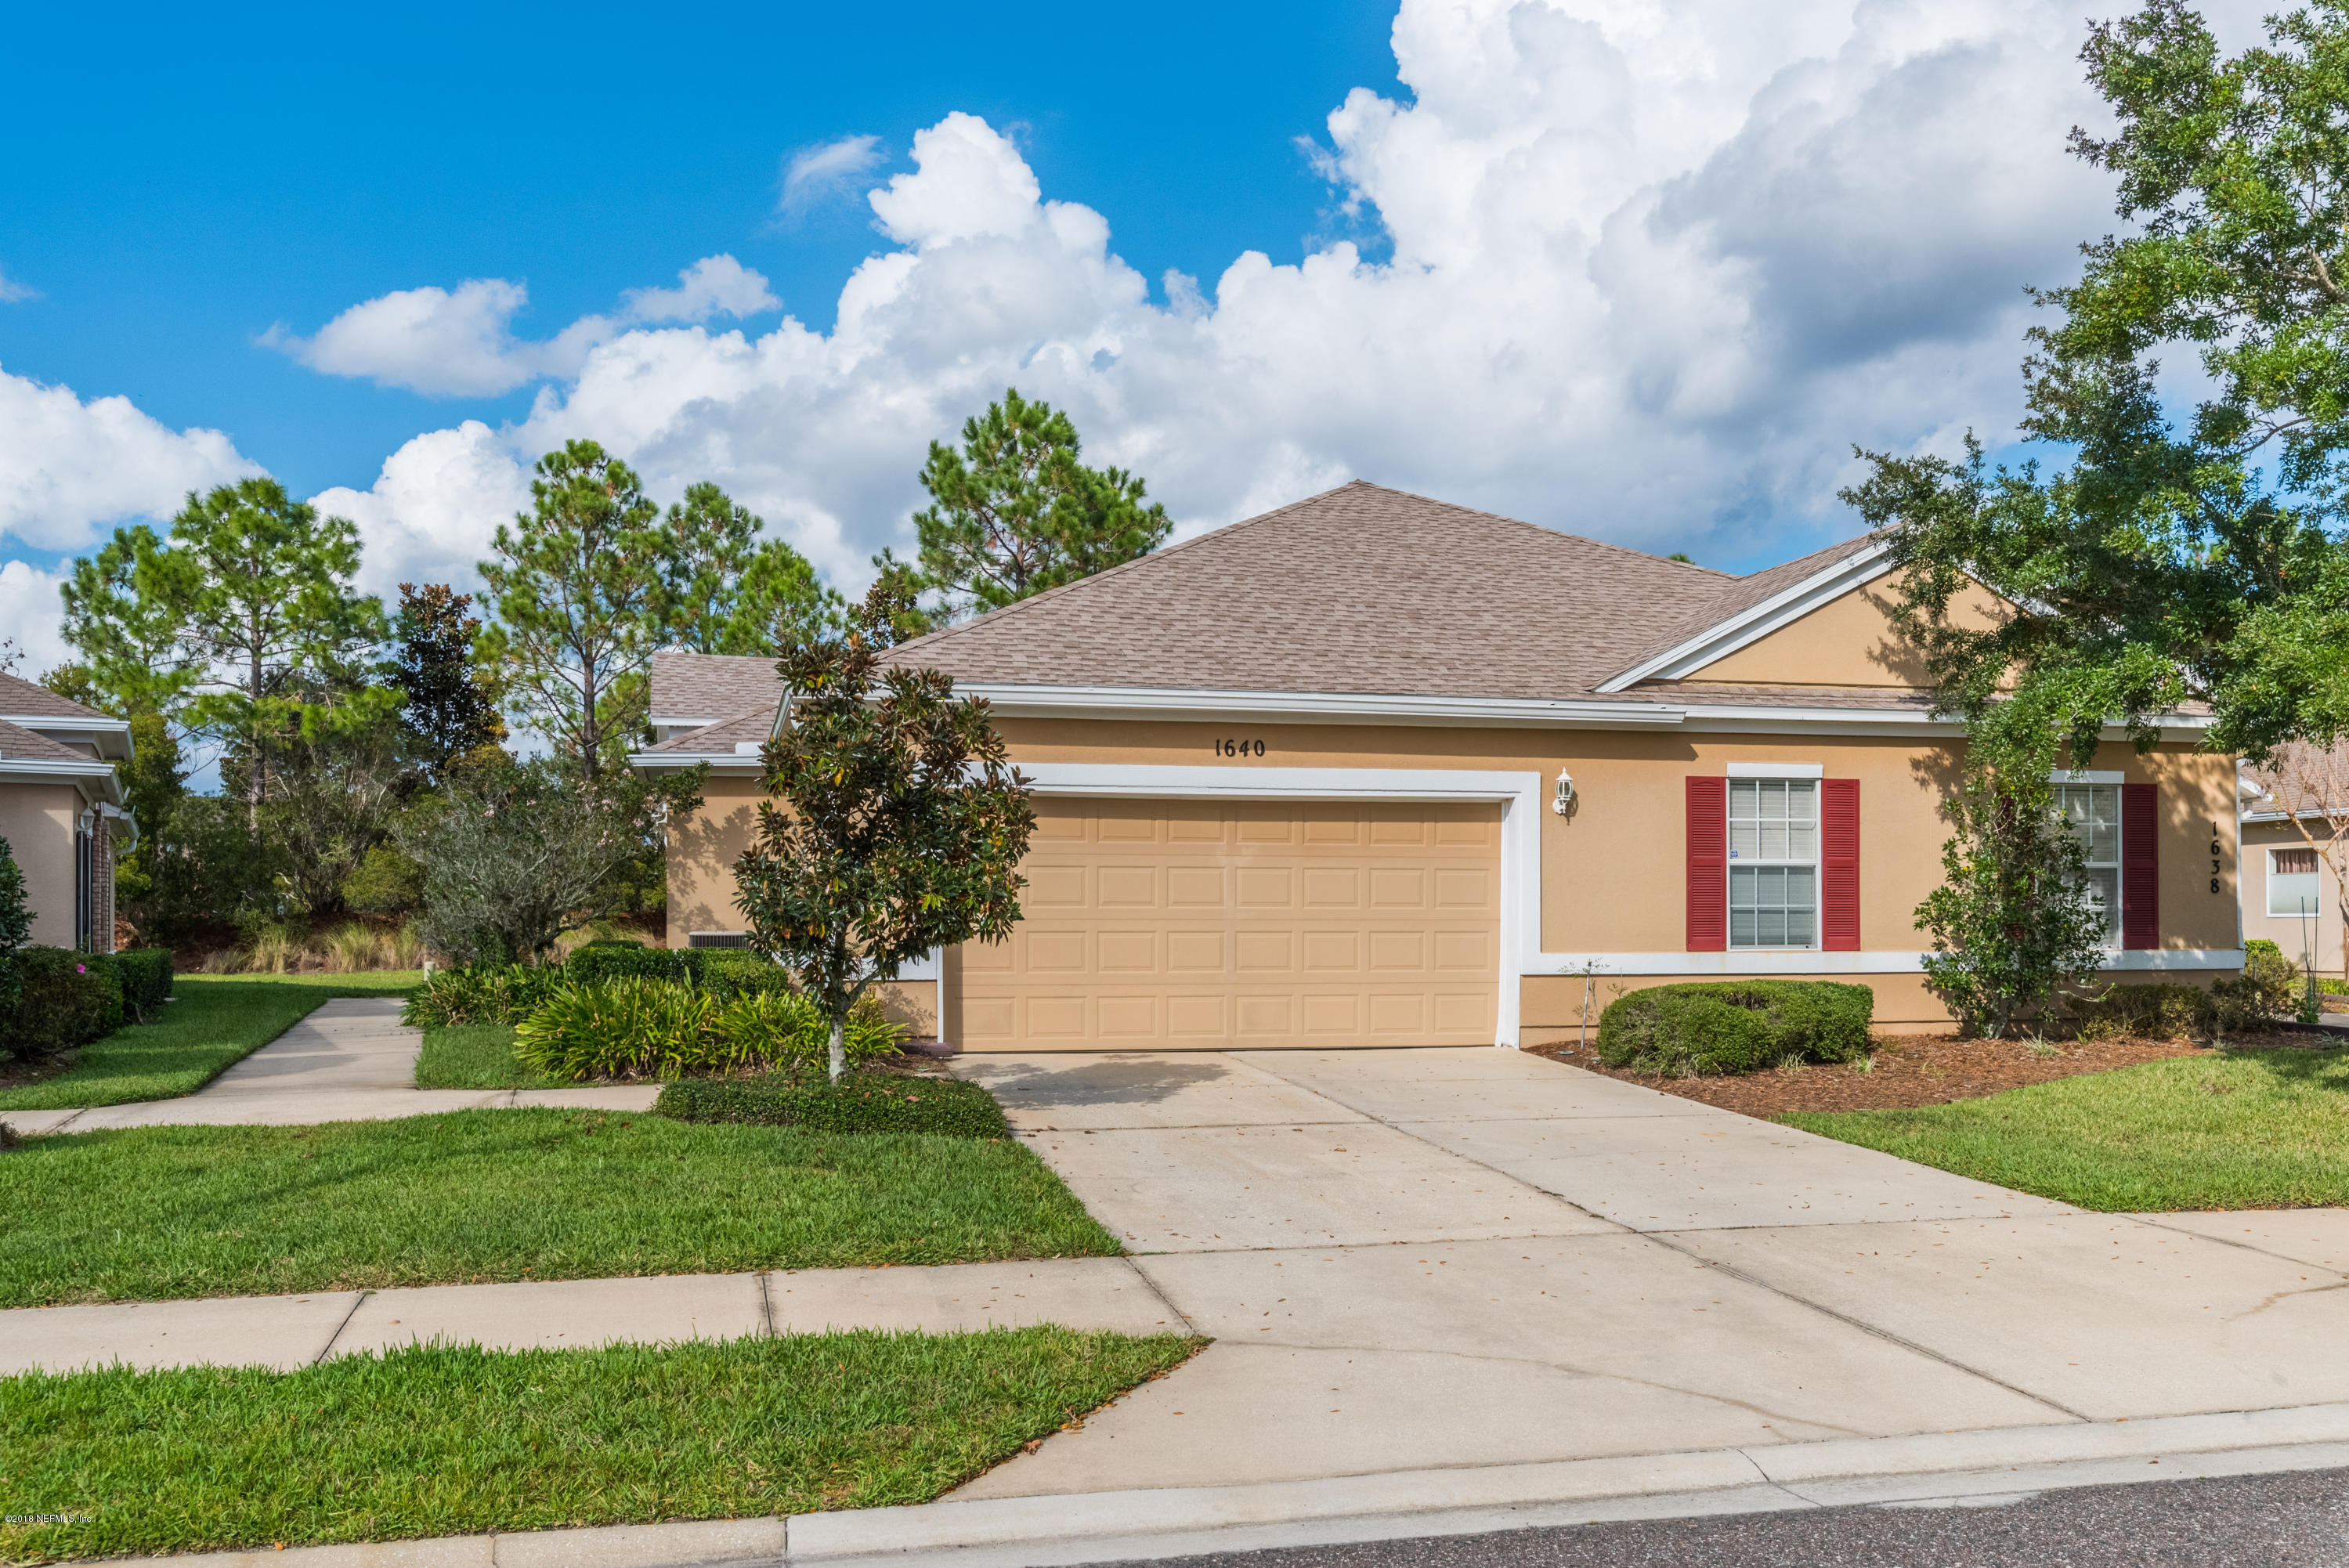 1640 CALMING WATER, FLEMING ISLAND, FLORIDA 32003, 3 Bedrooms Bedrooms, ,2 BathroomsBathrooms,Residential - single family,For sale,CALMING WATER,967162